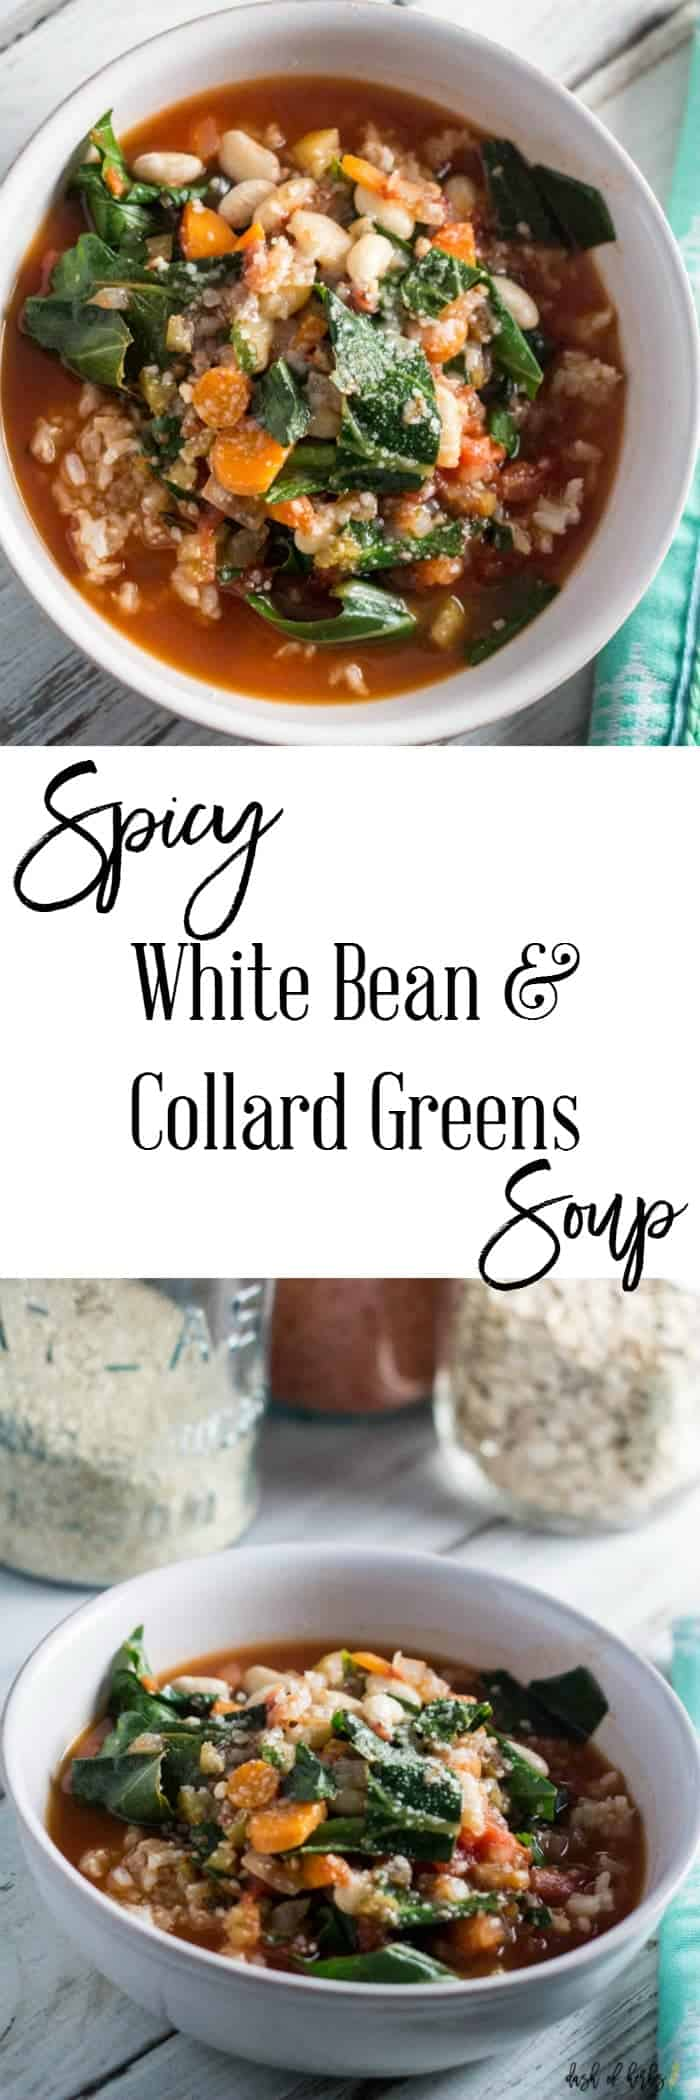 Spicy White Bean & Collard Greens Soup with Rice - A delicious recipe for the vegetarians in your life.